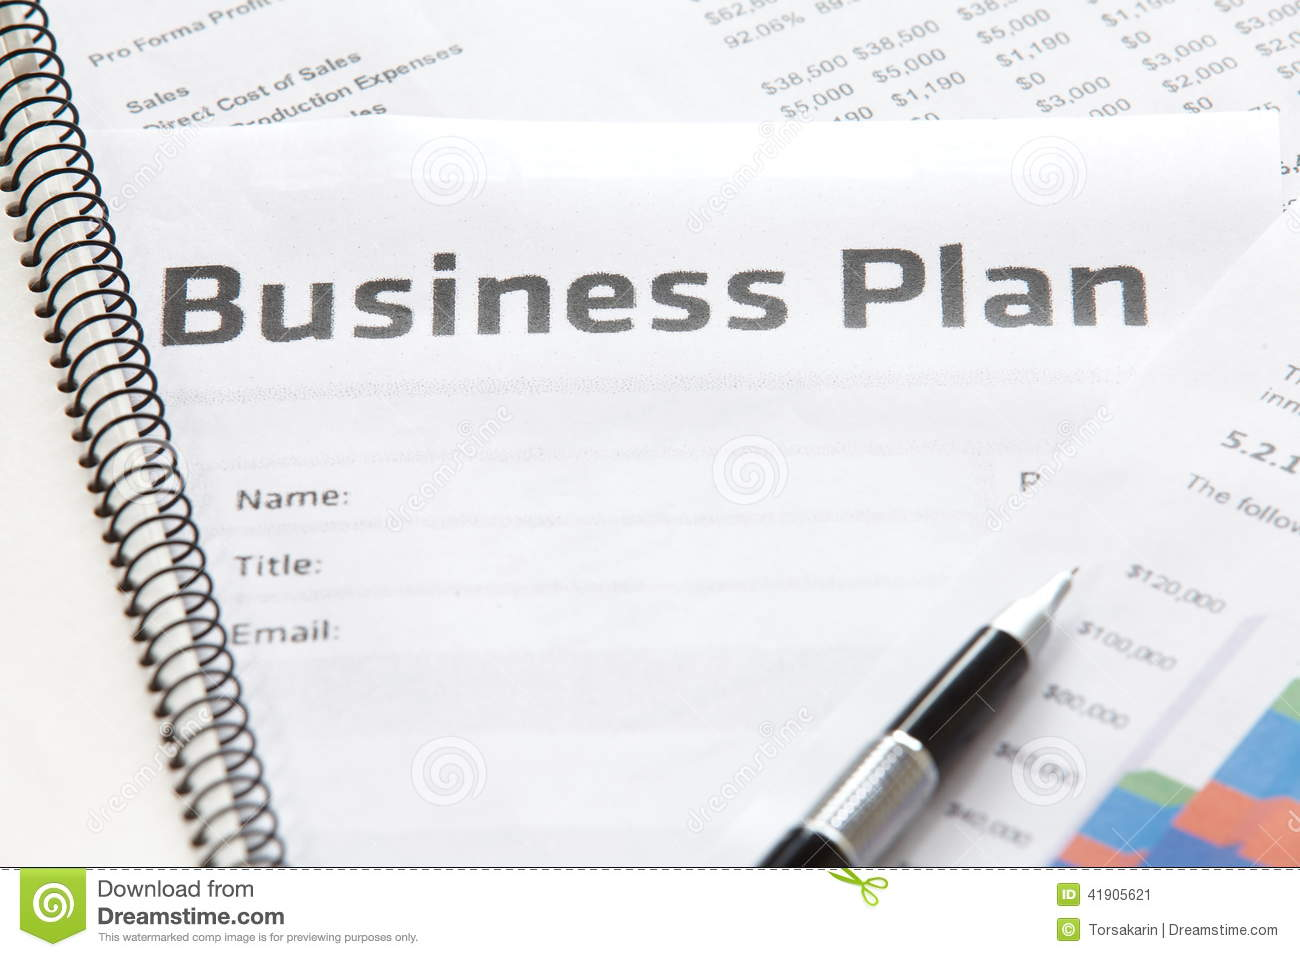 Starting a Drug Rehab Center – Sample Business Plan Template